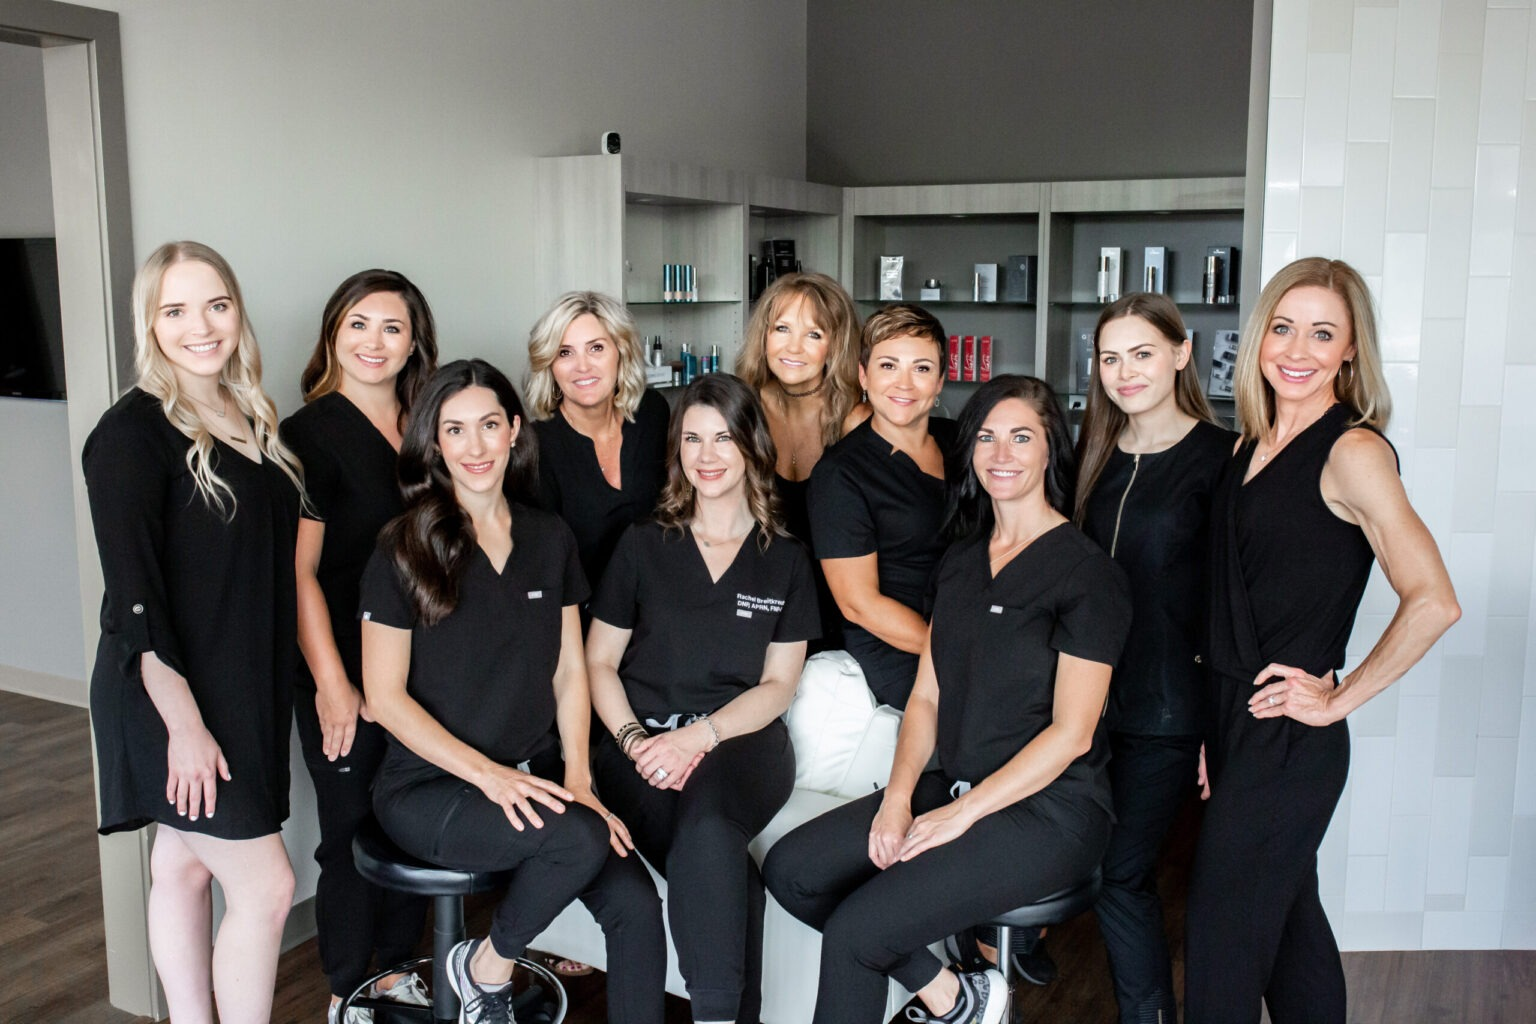 Staff - Bare Body Shop spa laser hair removal Omaha